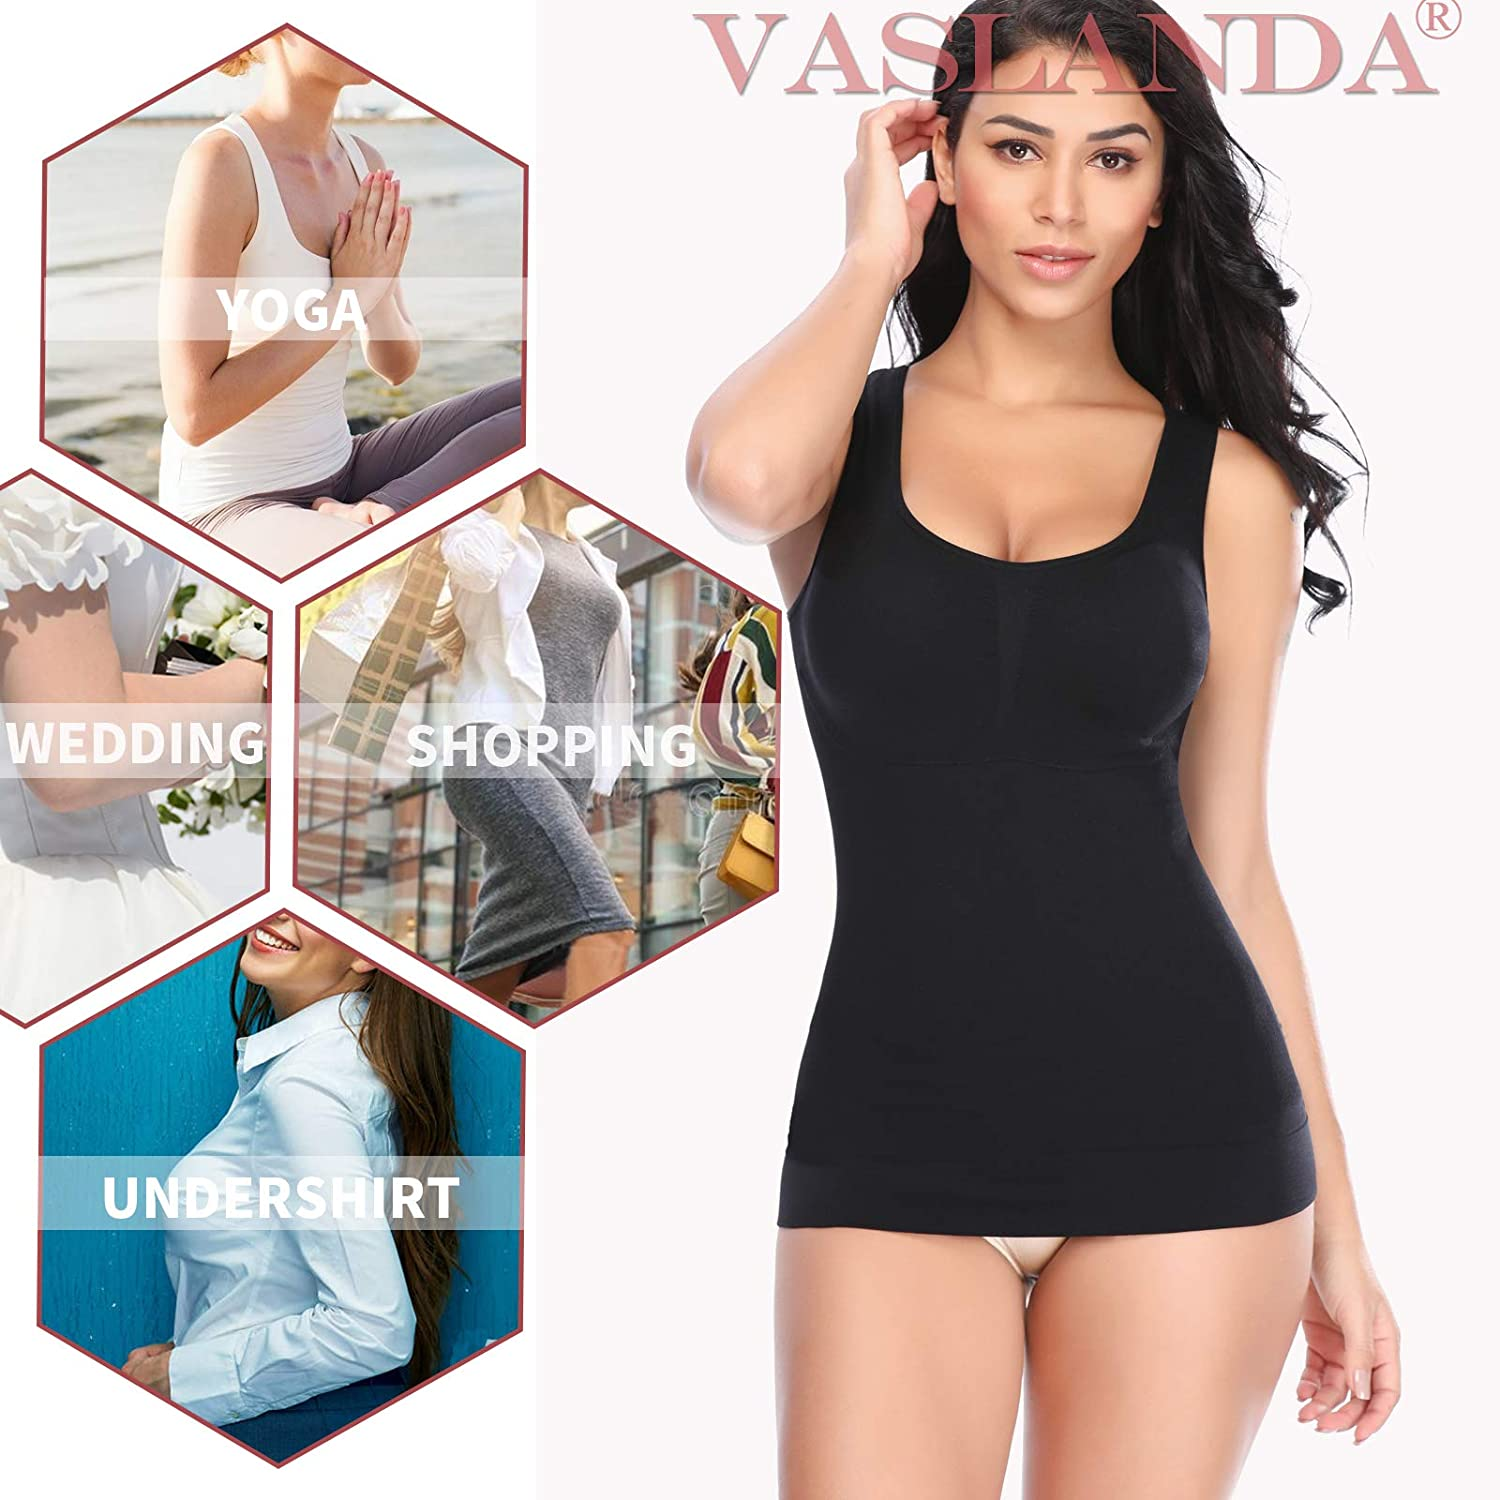 Body Shaping Camisole for Women Built-in Padded Bra Shapewear Shirts Tummy Control Slimming Compression Tank Top